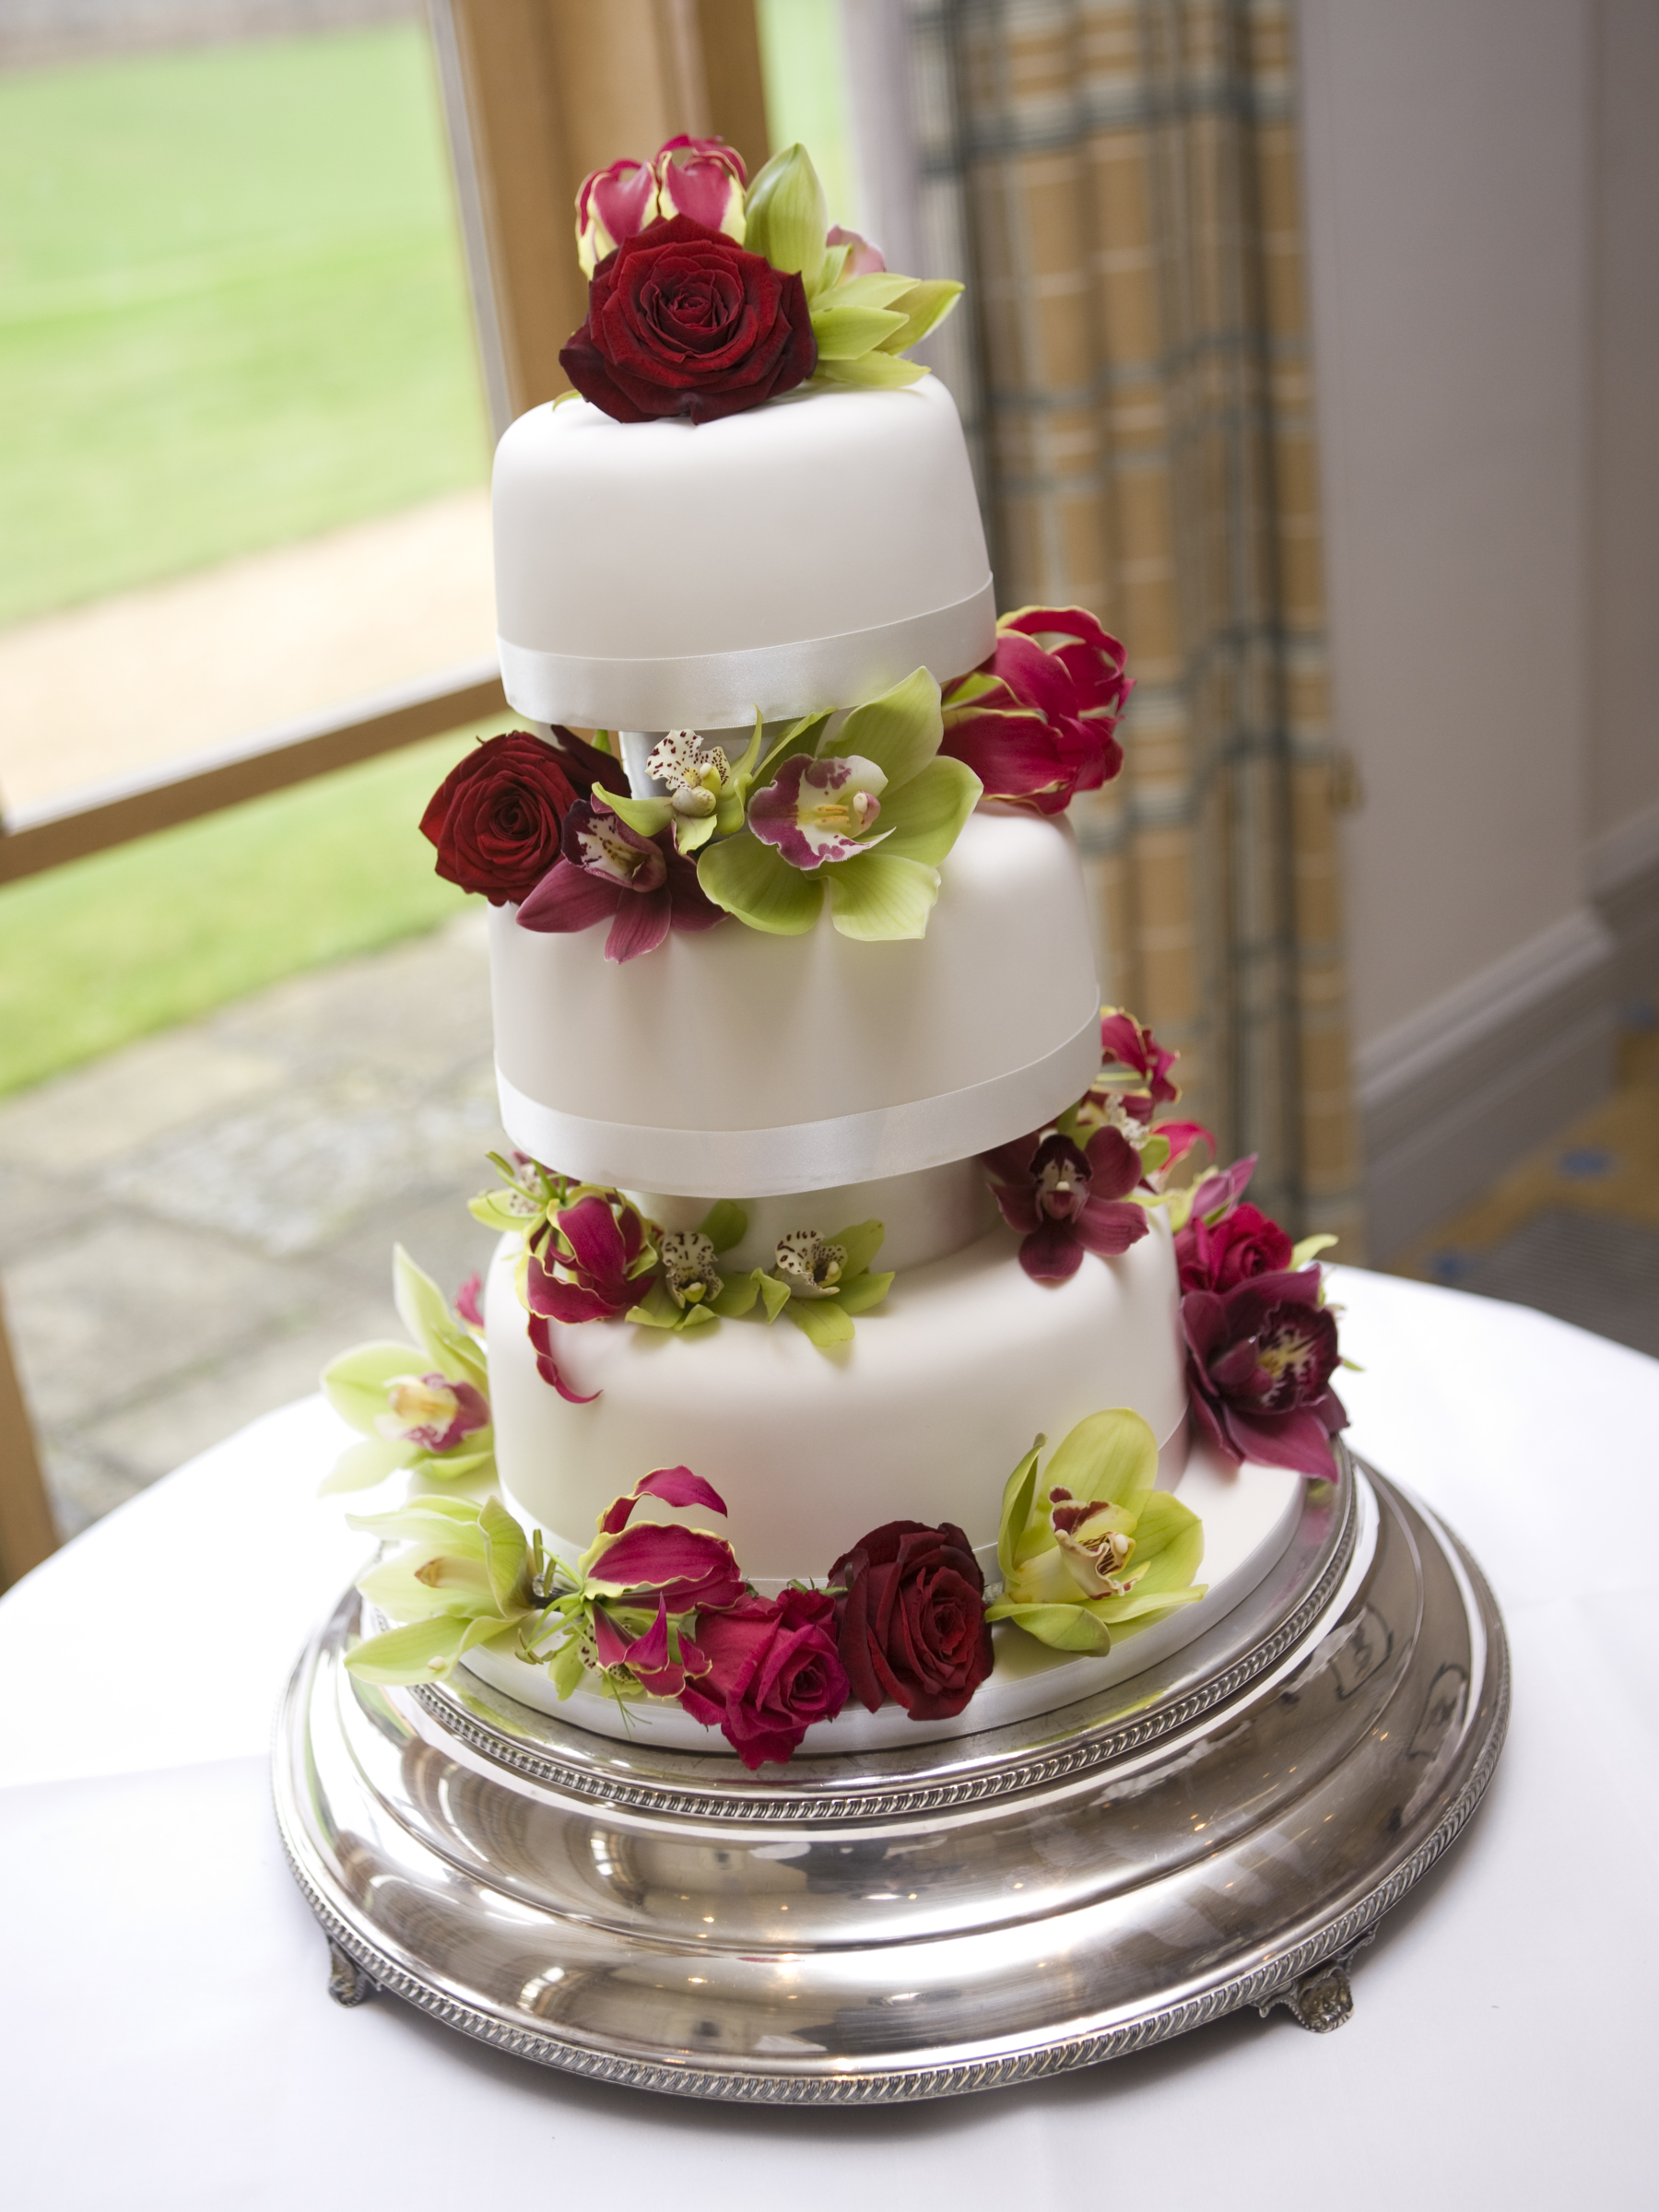 Simply Orchids & Roses Wedding Cake